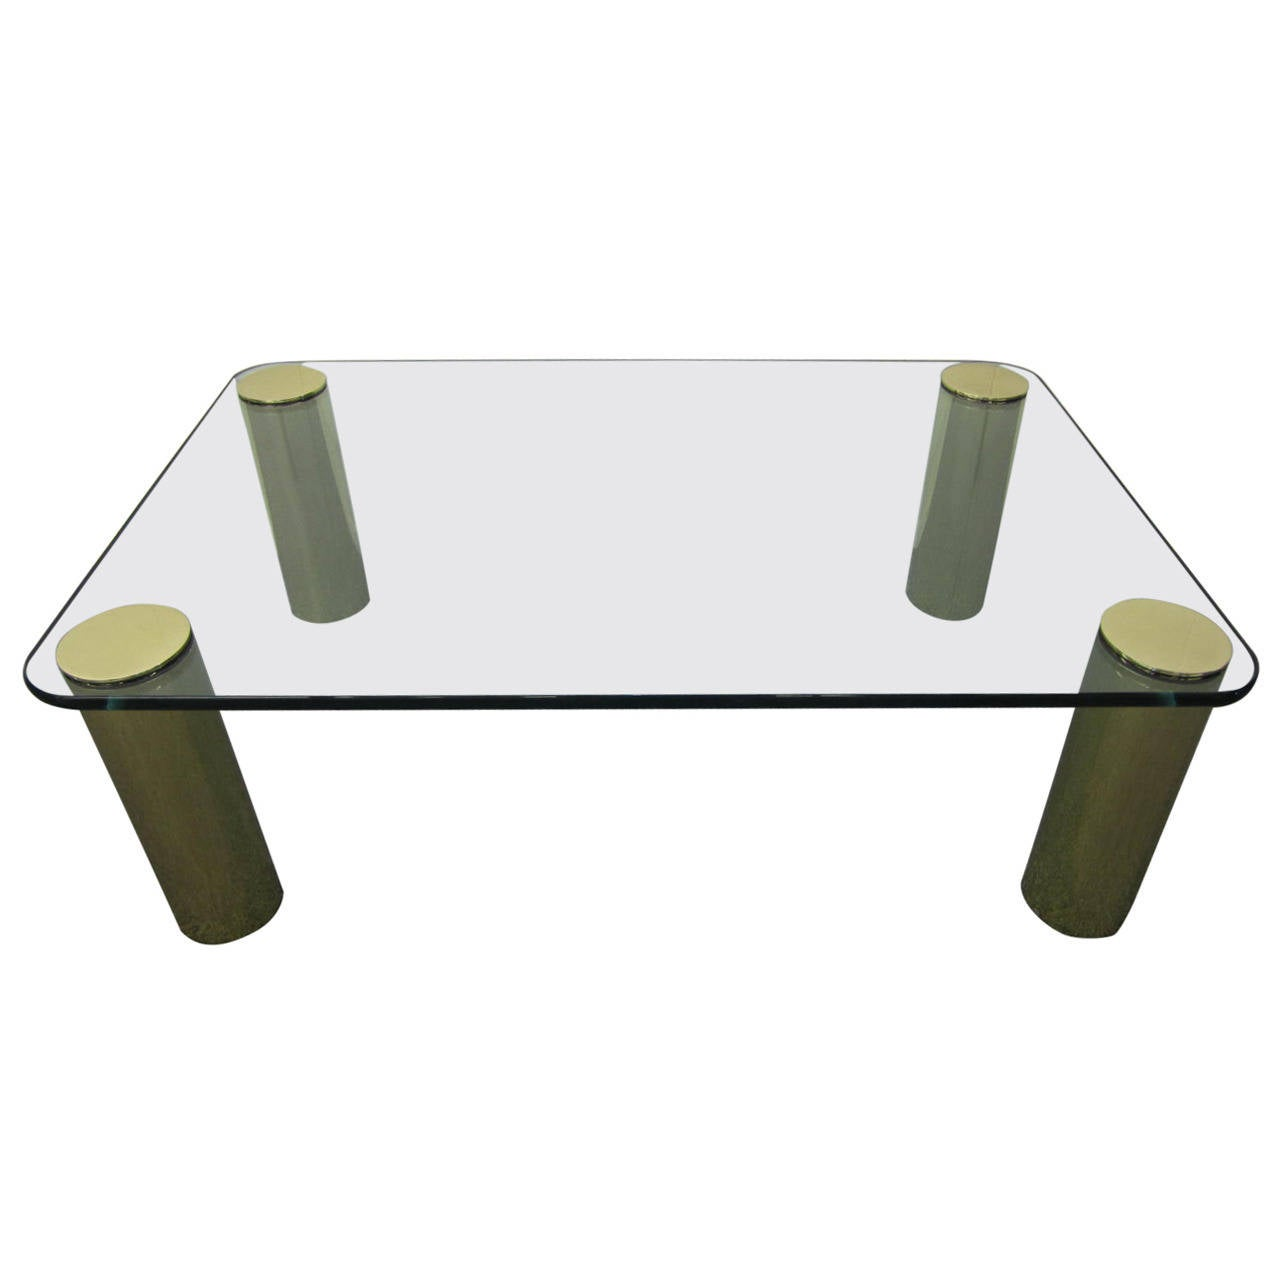 Fabulous Pace Collection Brass and Glass Coffee Table, Mid-Century Modern For Sale